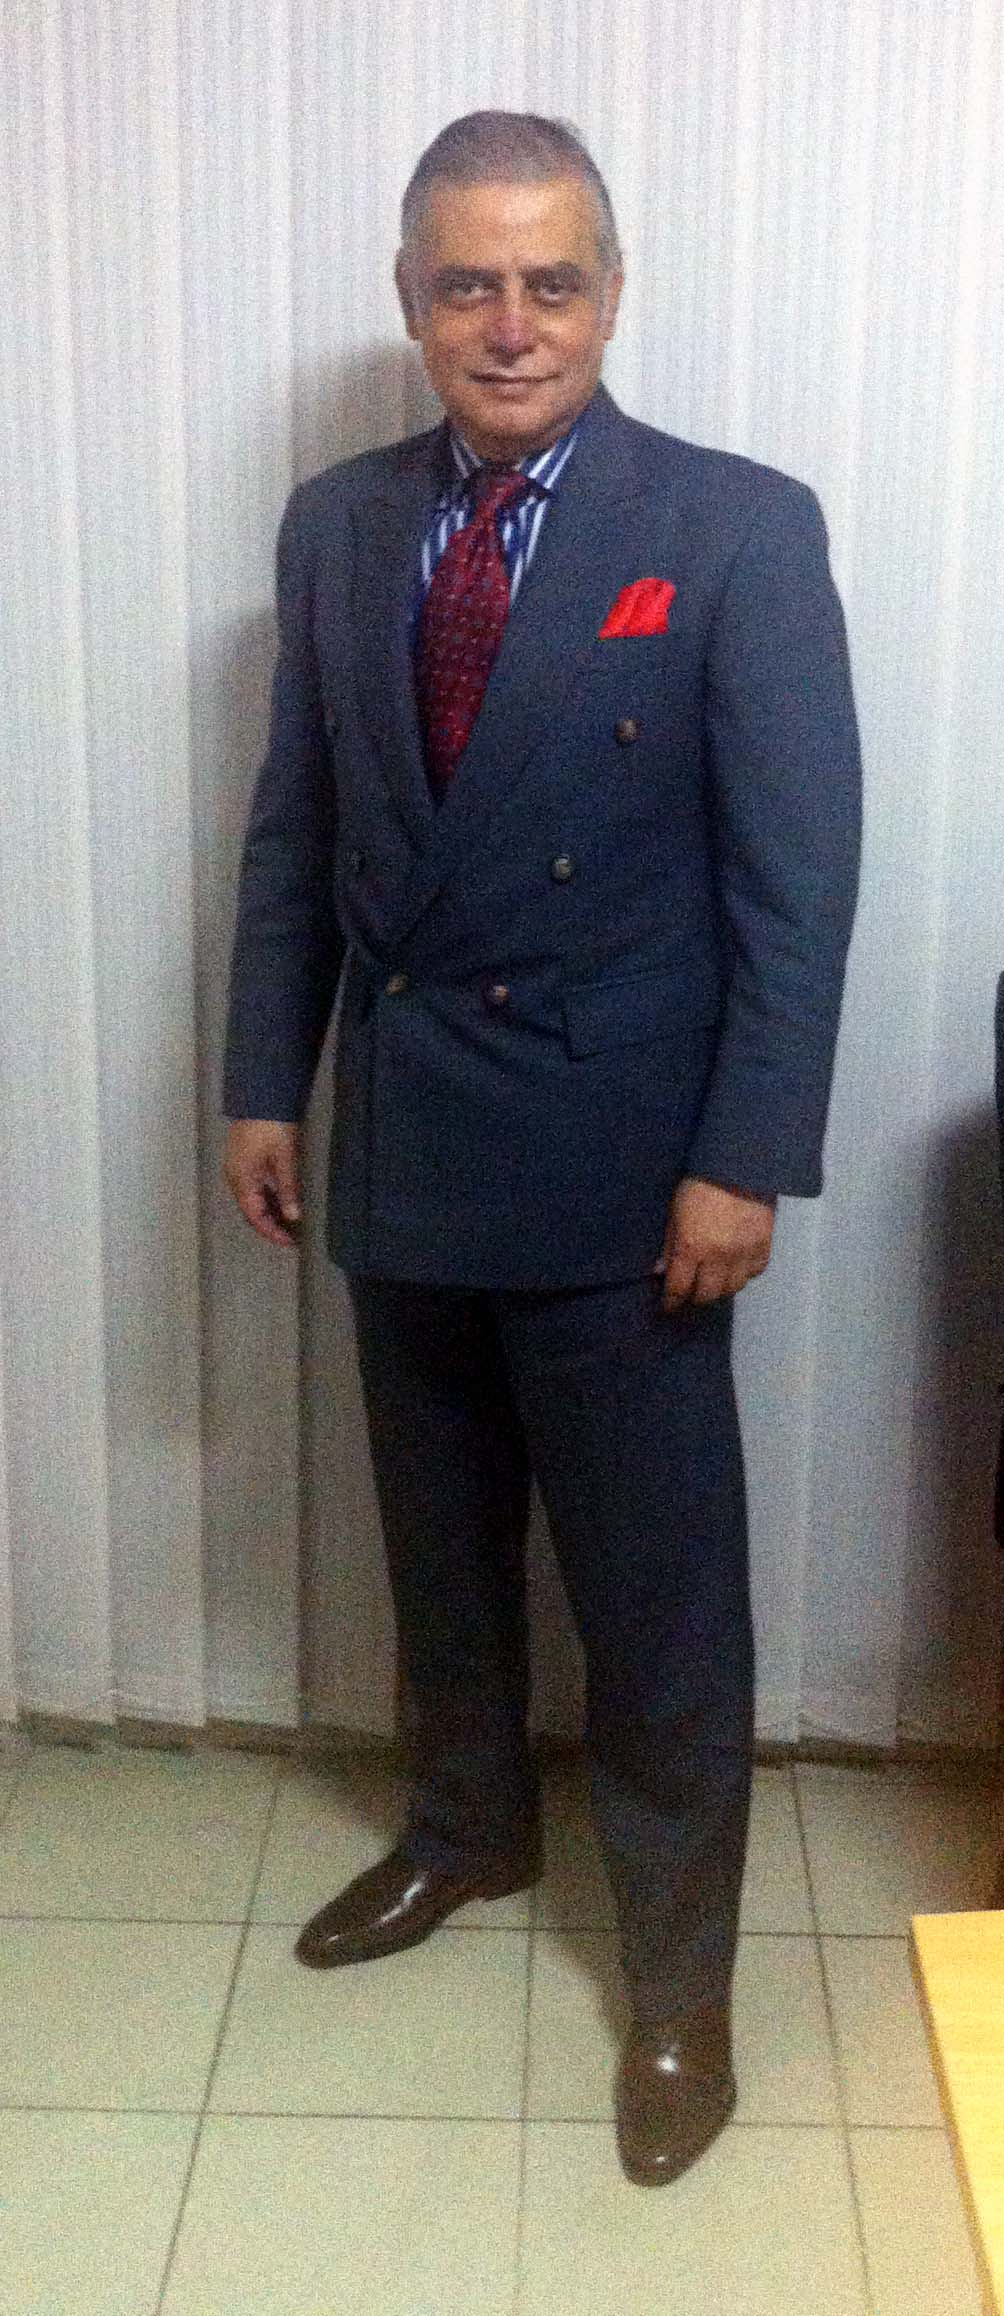 Ash-gray double-breasted suit (6X1) – This is a blog about men's style